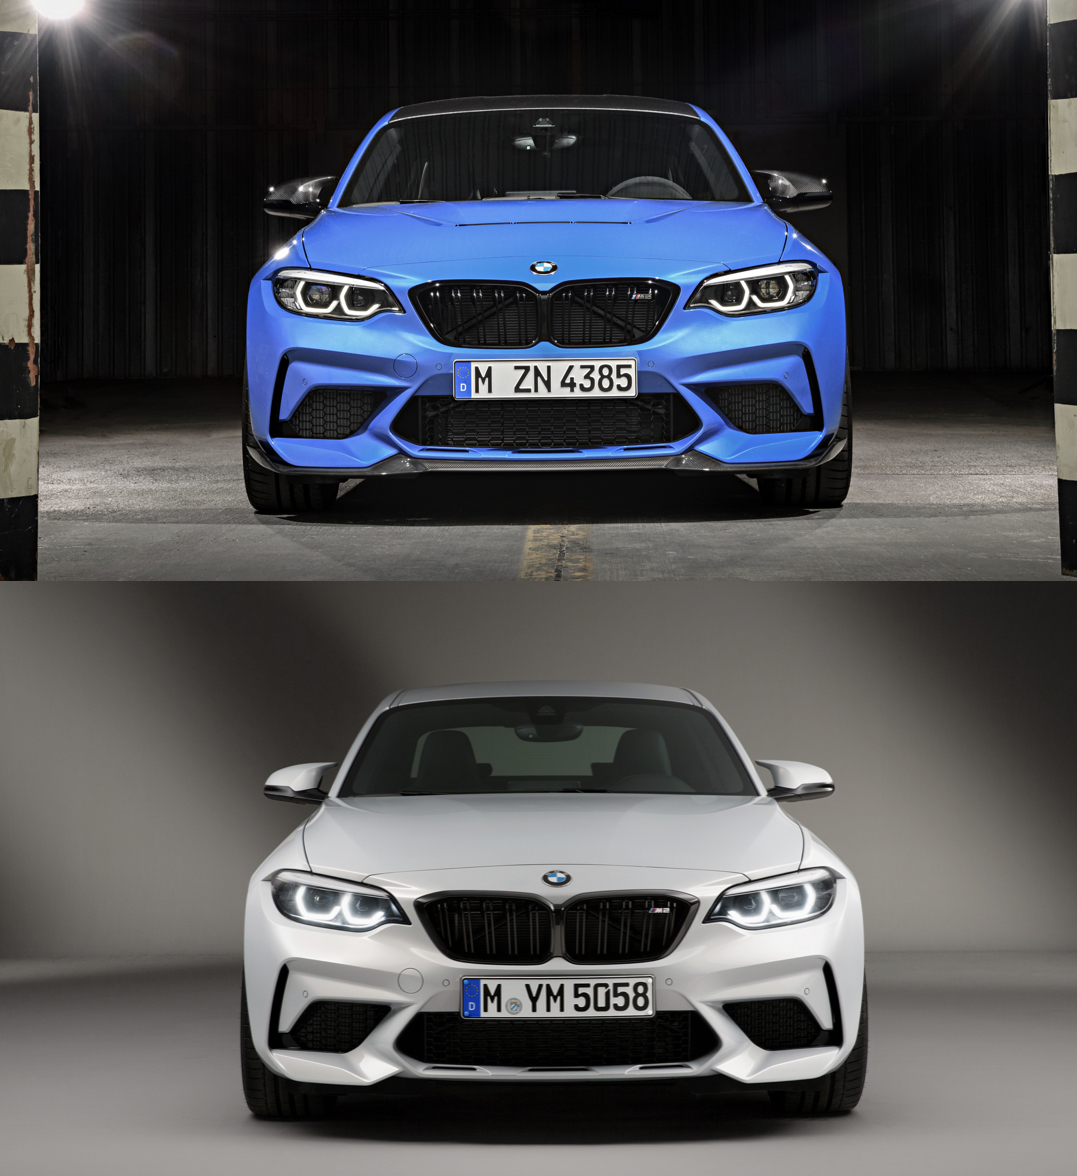 BMW M2 CS M2 Comp Comparison